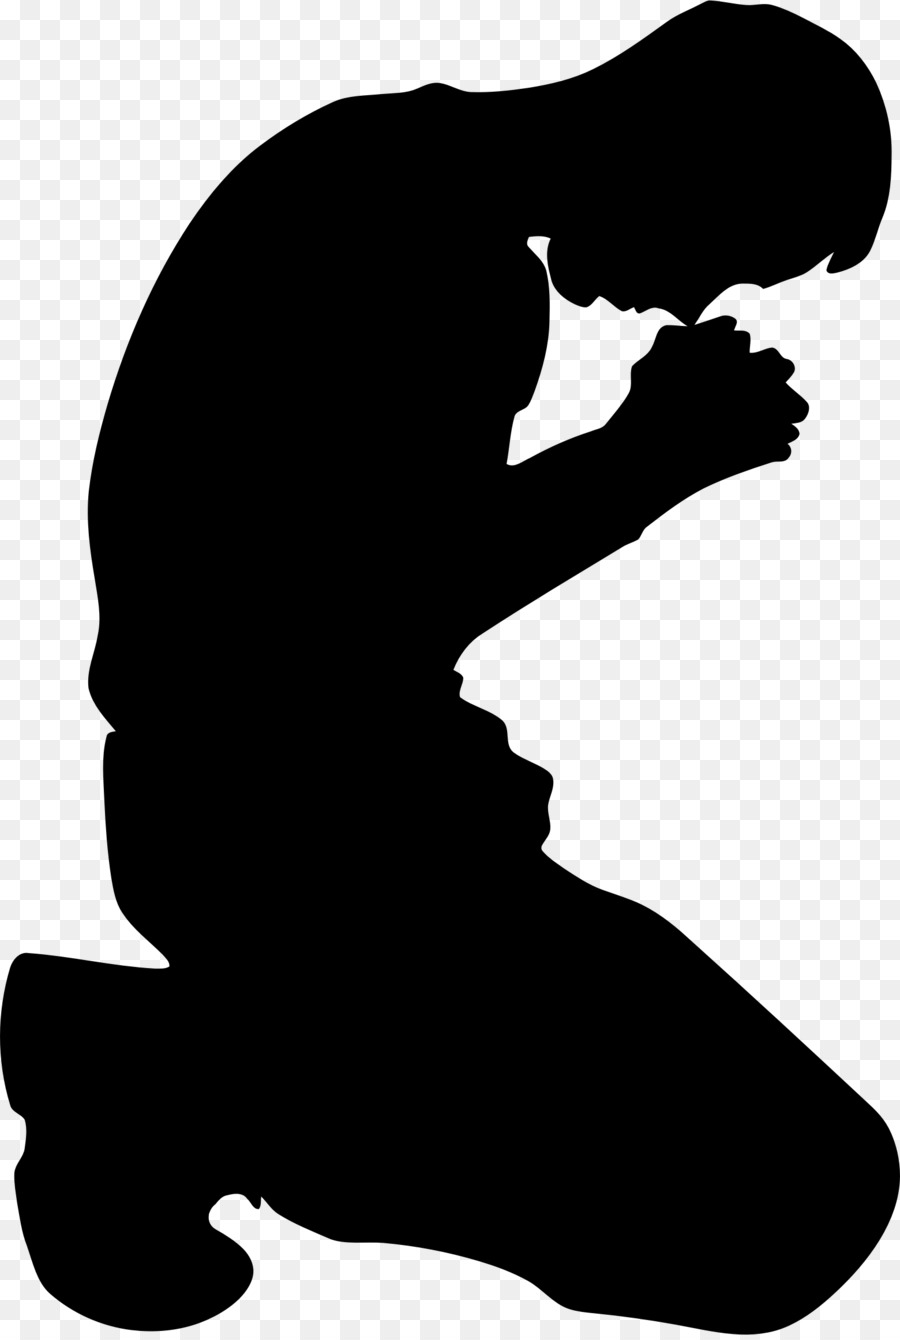 900x1340 Praying Hands Kneeling Silhouette Clip Art